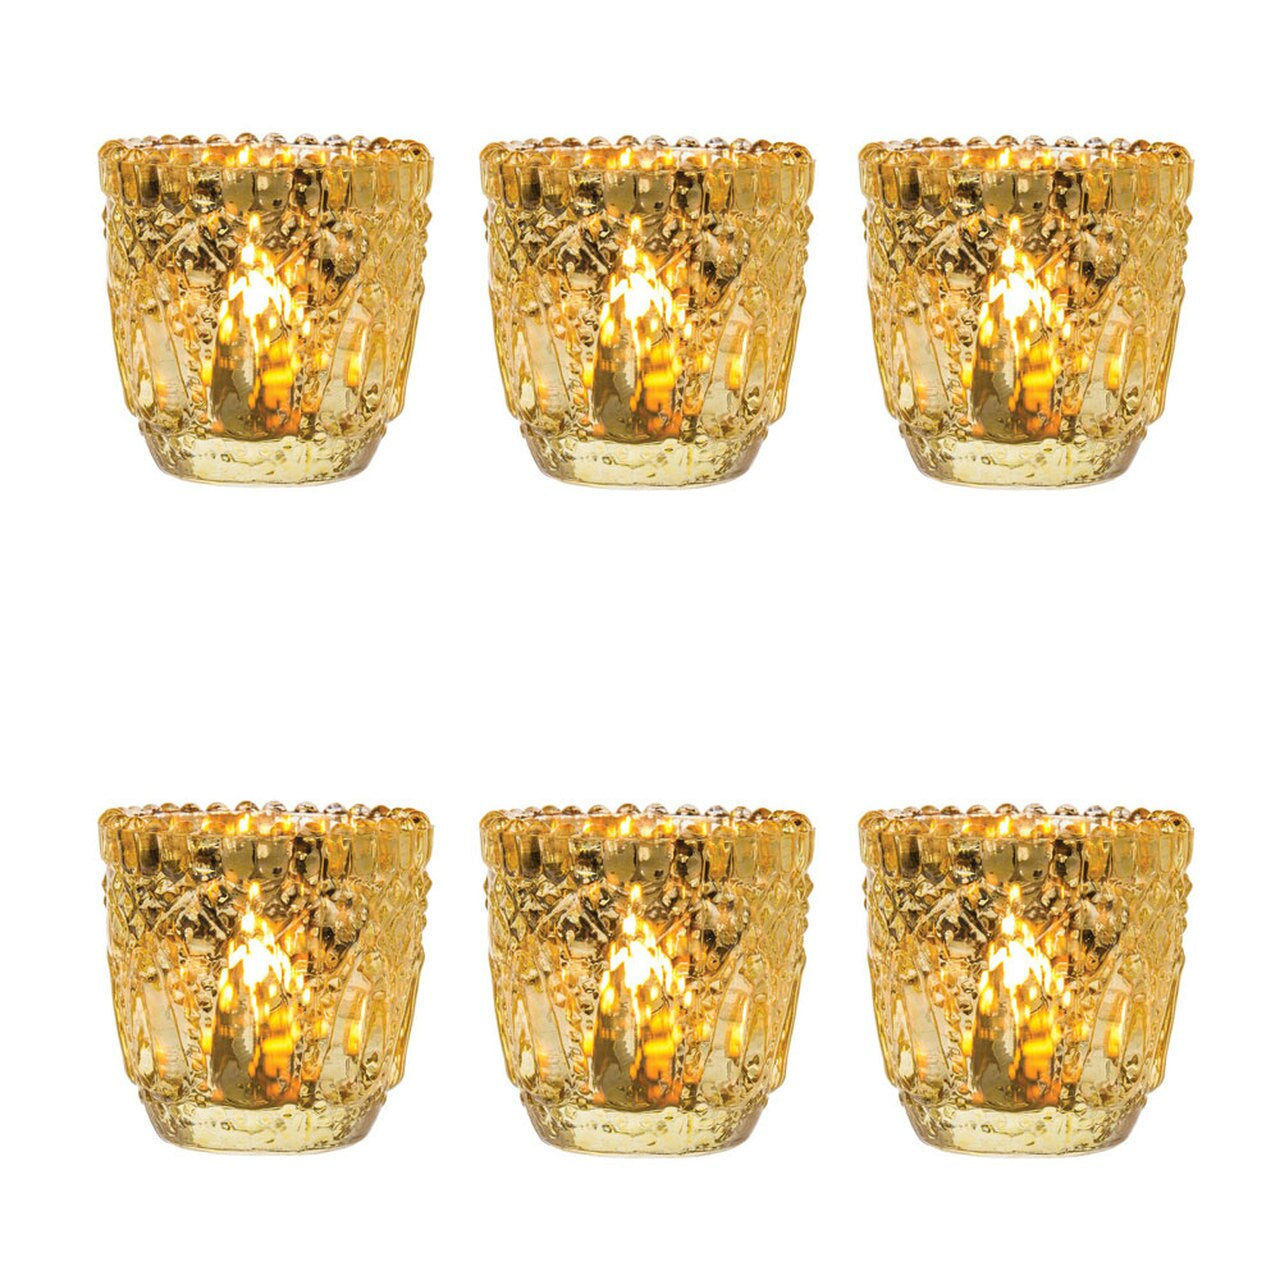 6 Pack Lillian Faceted Vintage Glass Candle Holders Gold For Use With Tea Lights